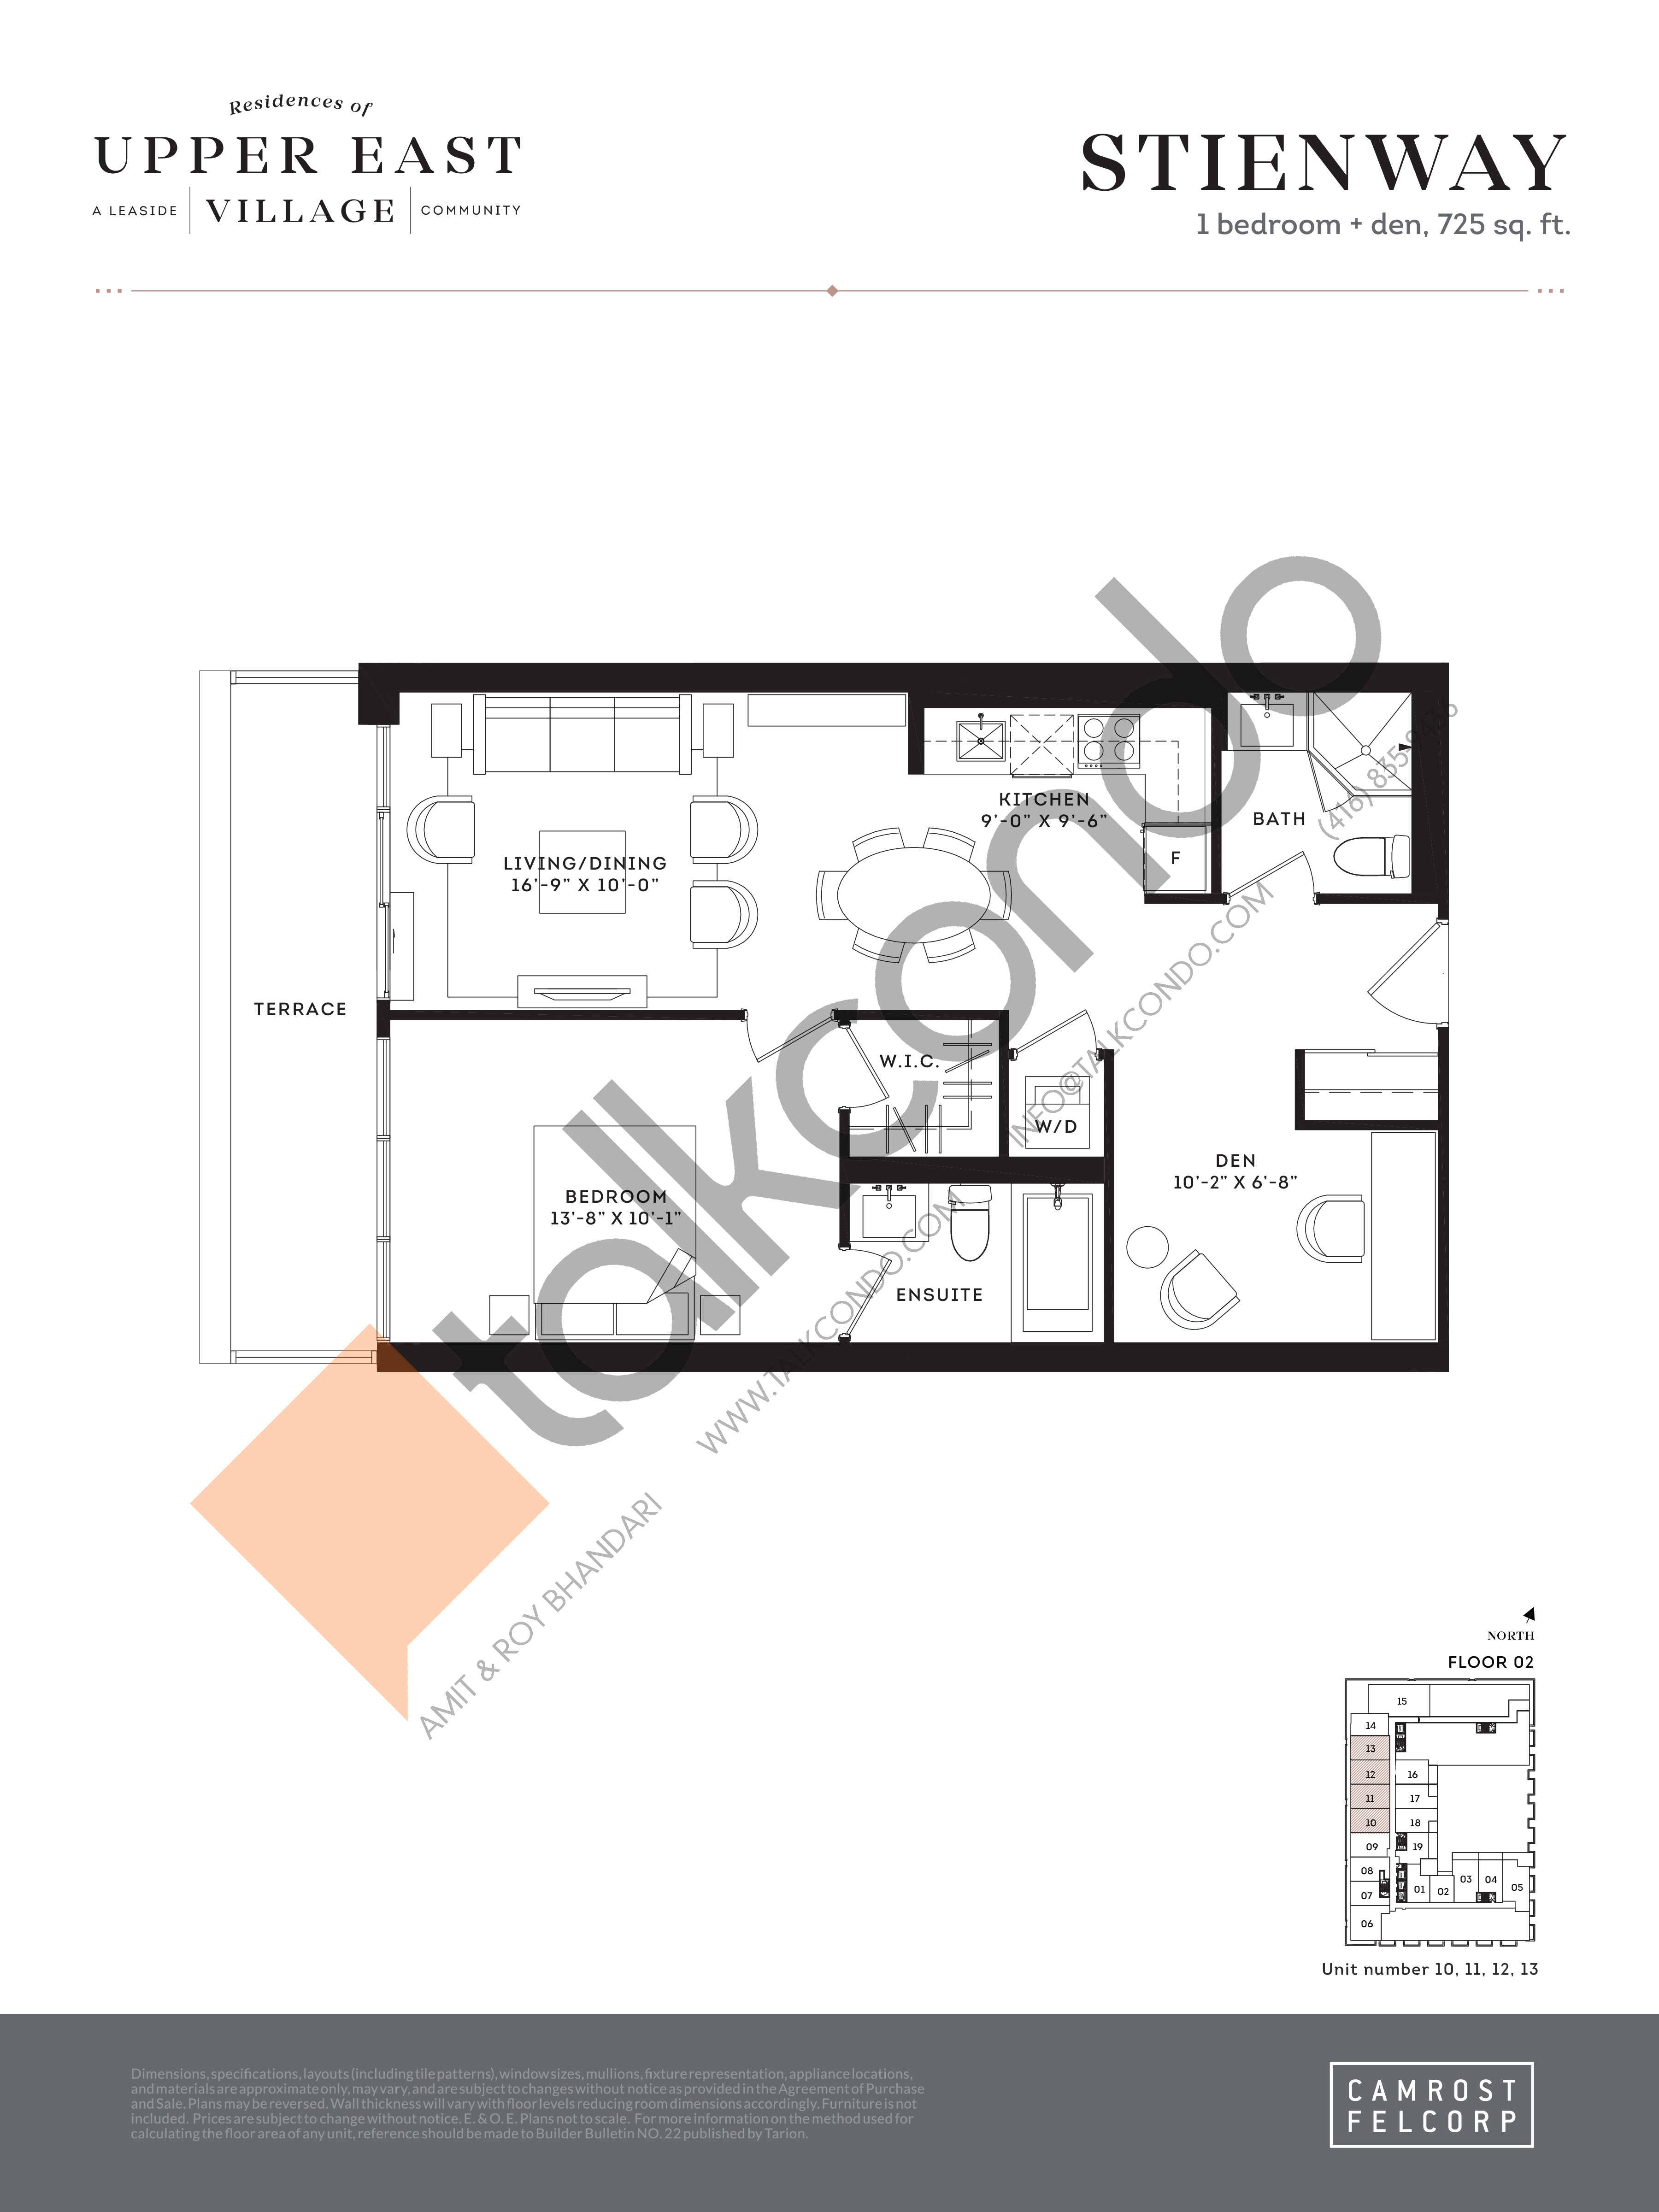 Stienway Floor Plan at Upper East Village Condos - 725 sq.ft